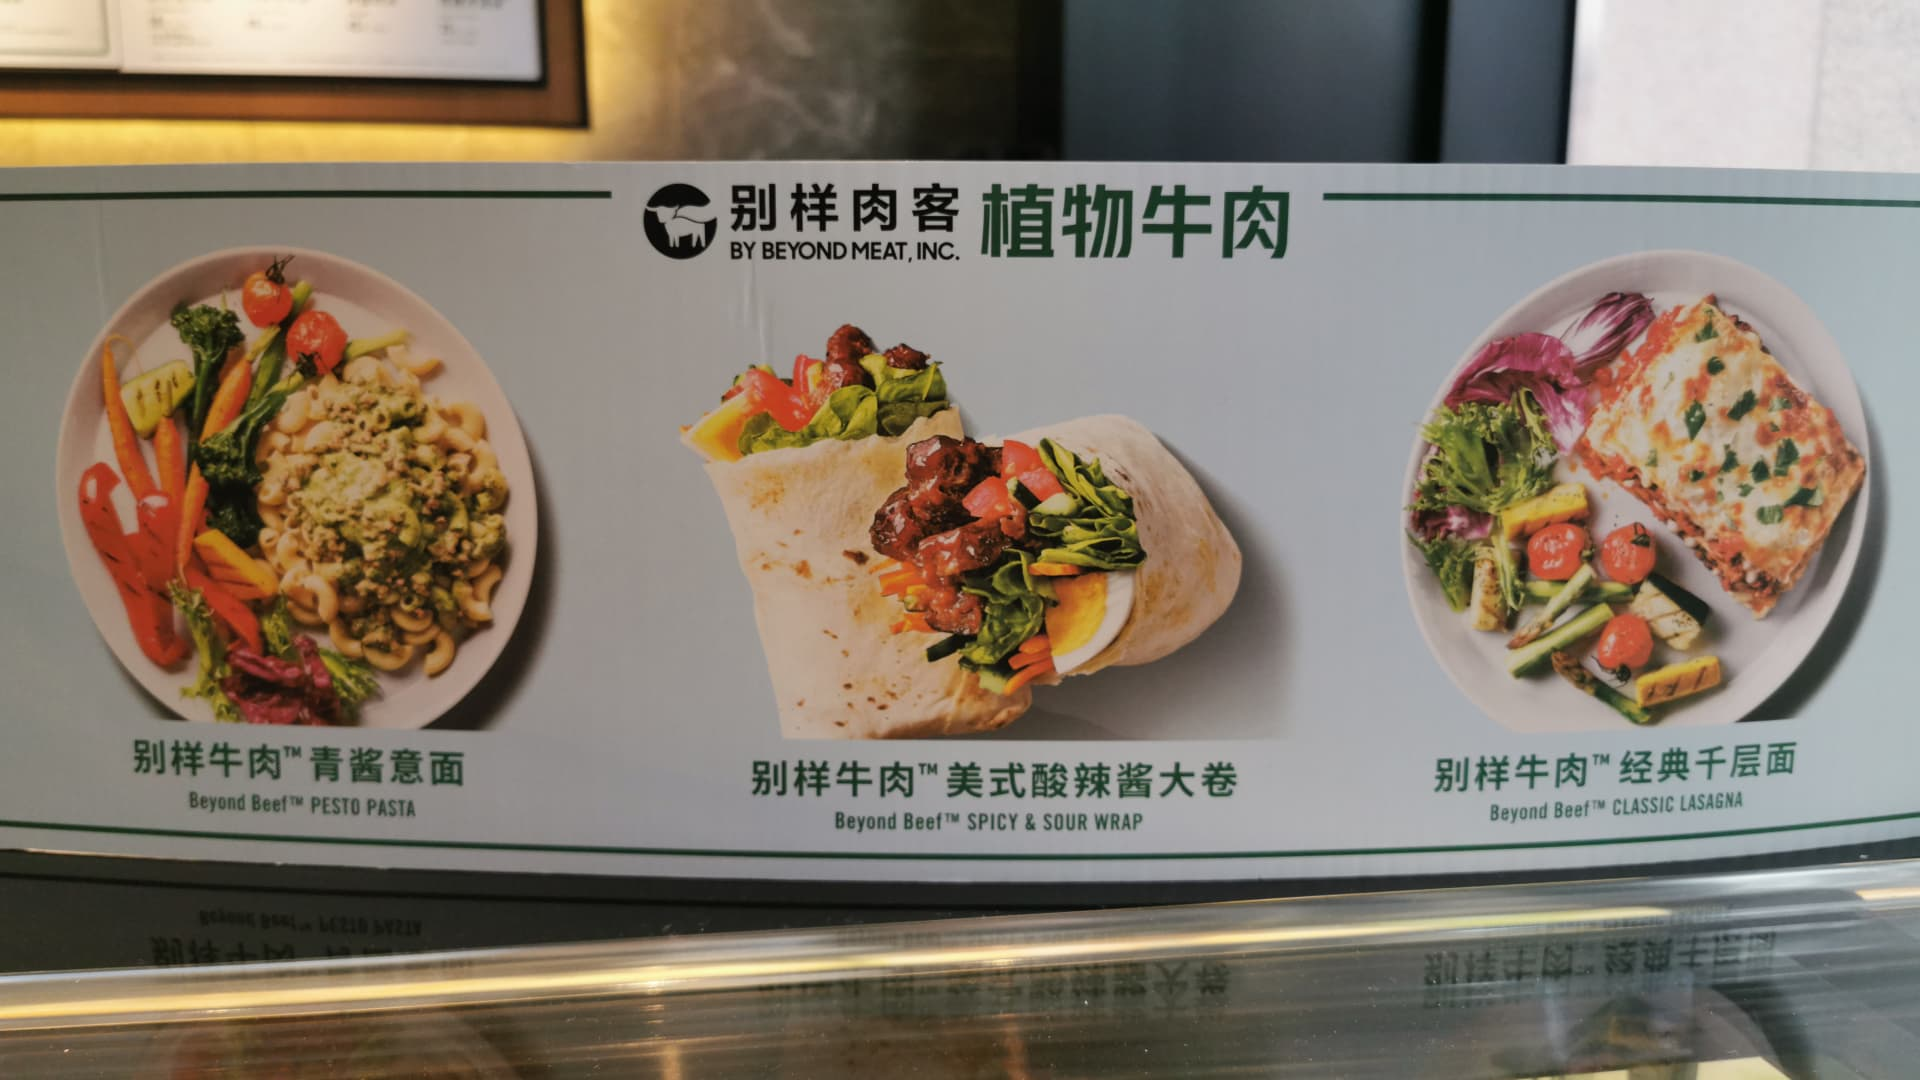 Plant-based meat dishes are seen offered at a Starbucks store on April 22, 2020 in Shanghai, China.